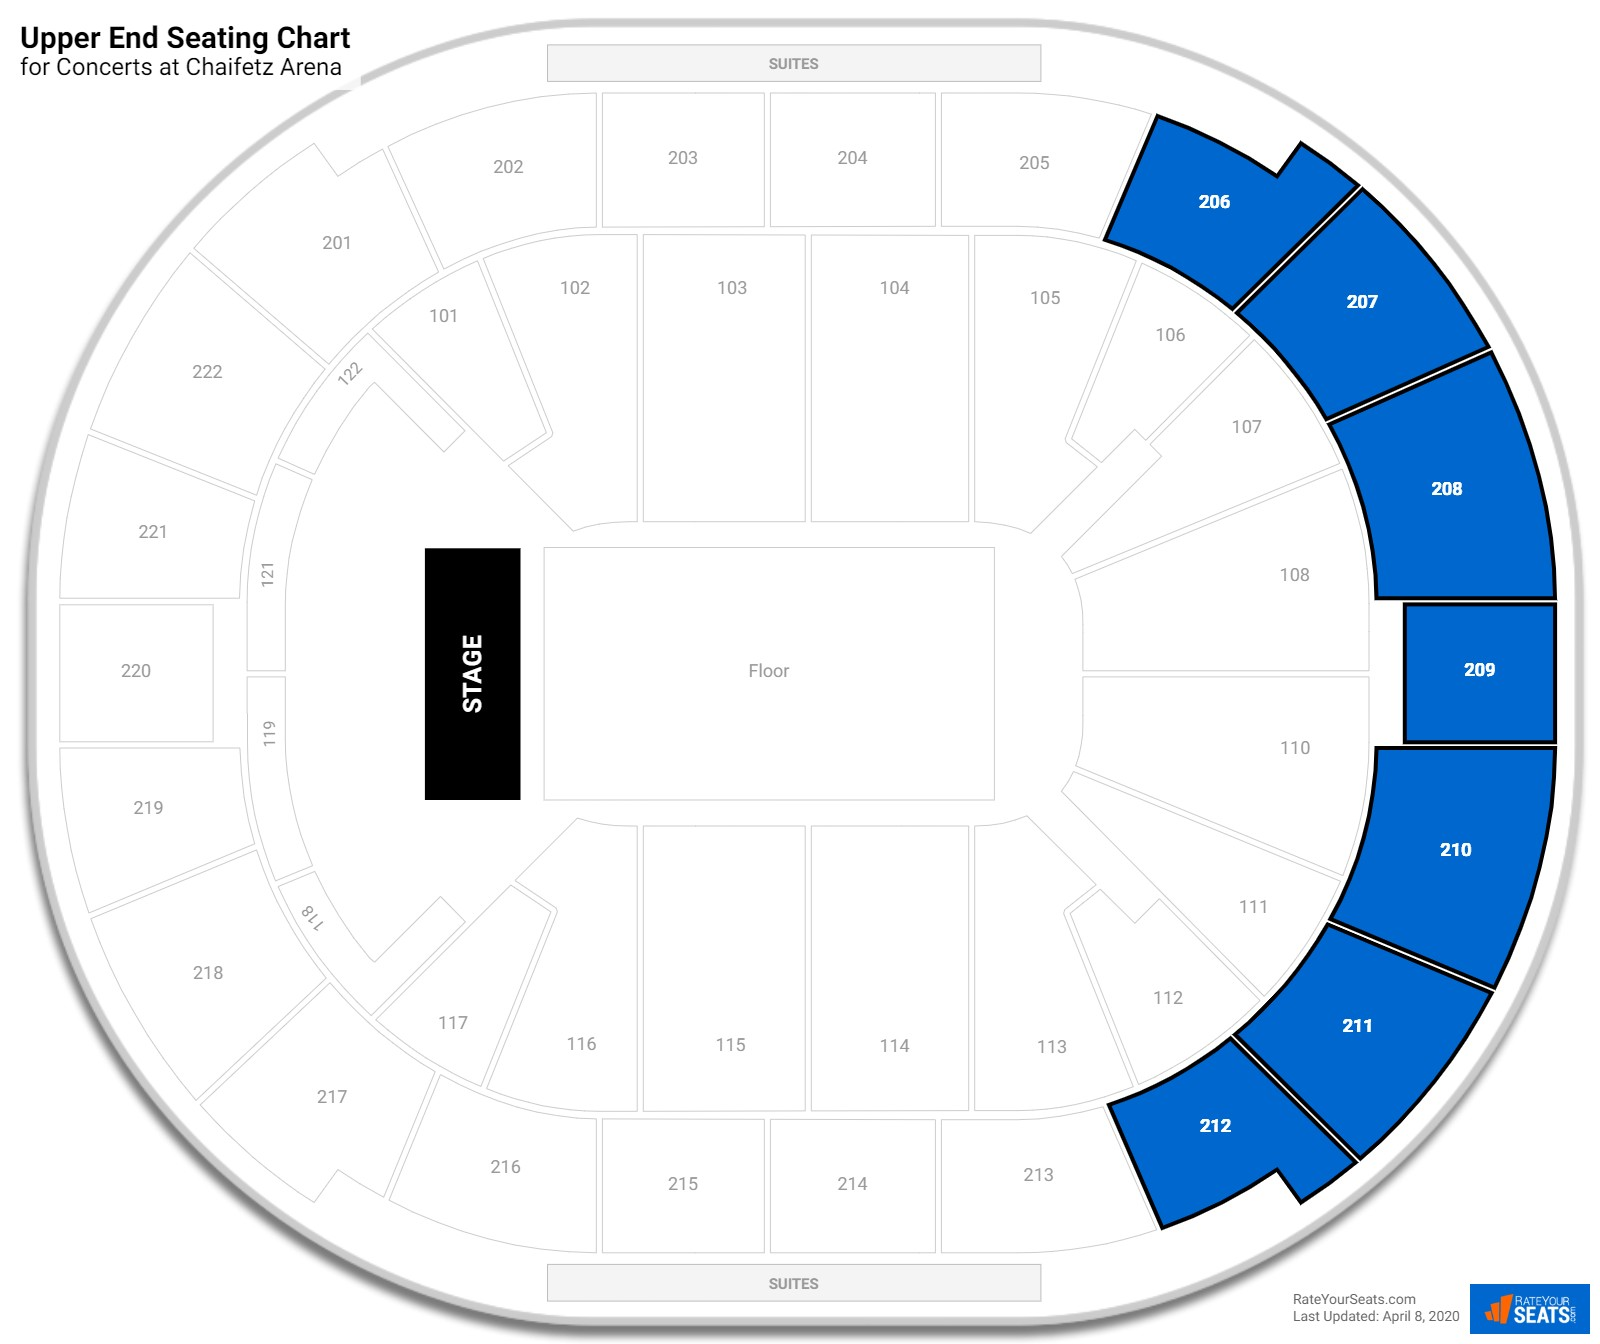 Chaifetz Arena Upper End seating chart